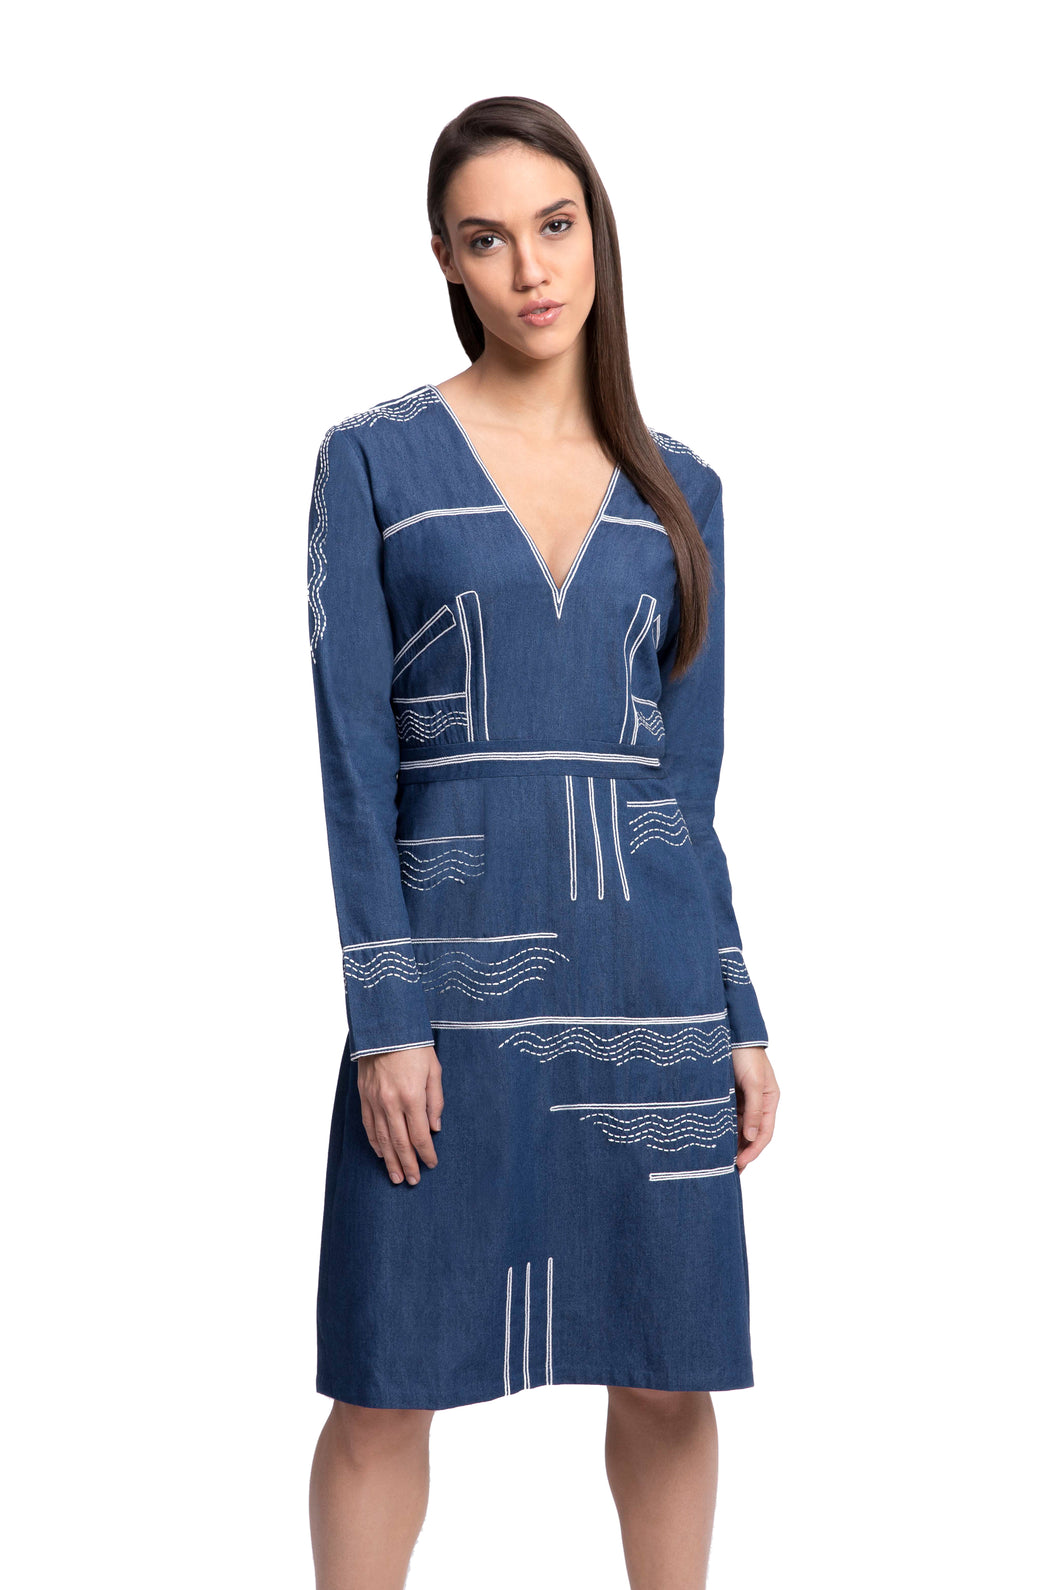 FRIDERICH Embroidered Denim Dress